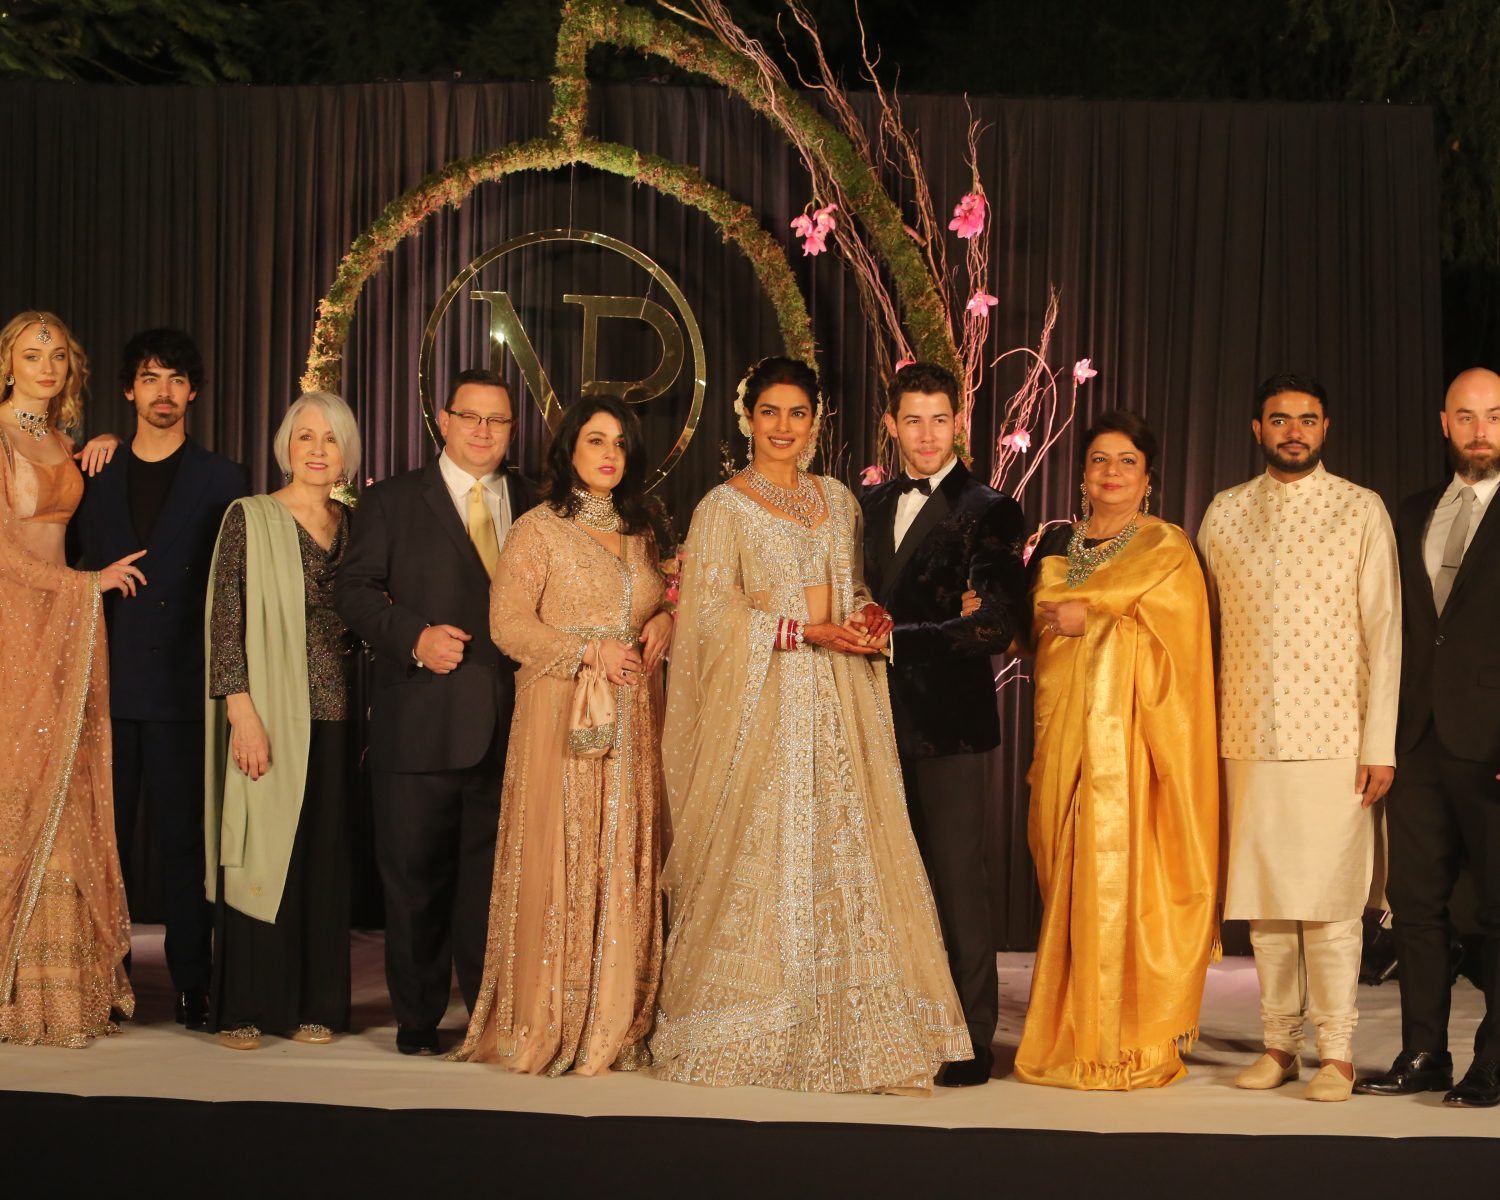 How Priyanka Chopra And Nick Jonas Honored Their Families In The Wedding